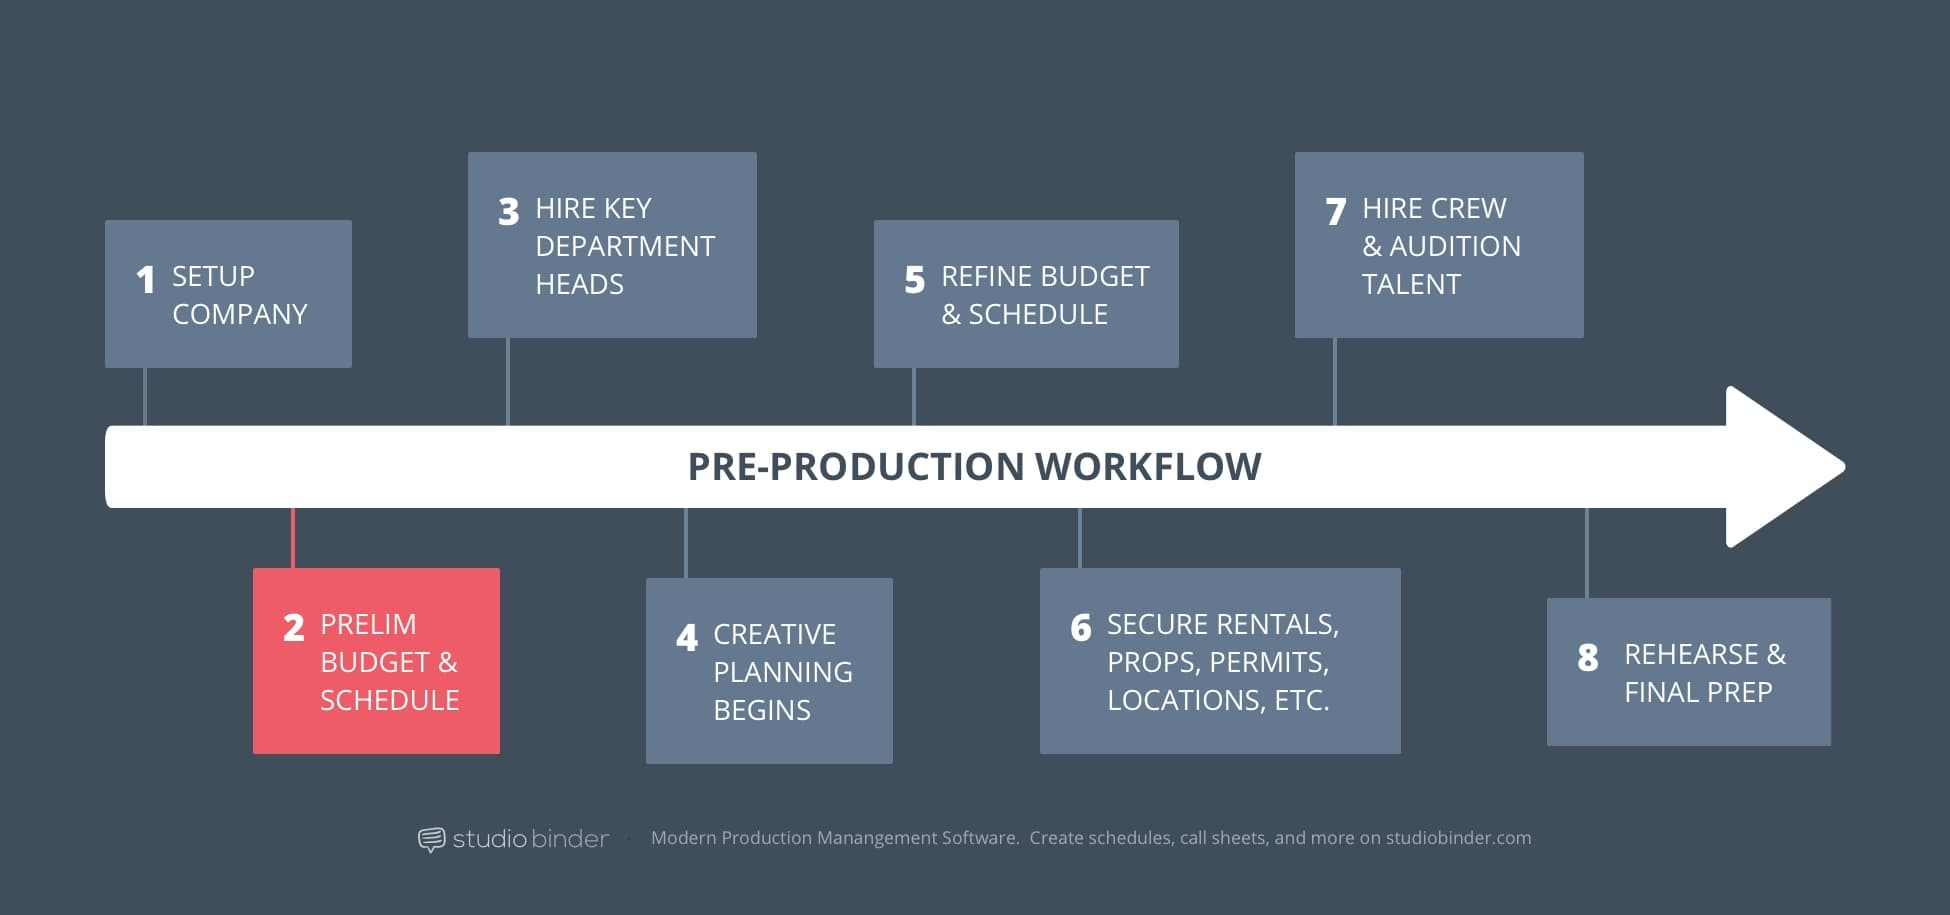 2 – StudioBinder Pre-Production Workflow – Prelim Budget and Scheduling